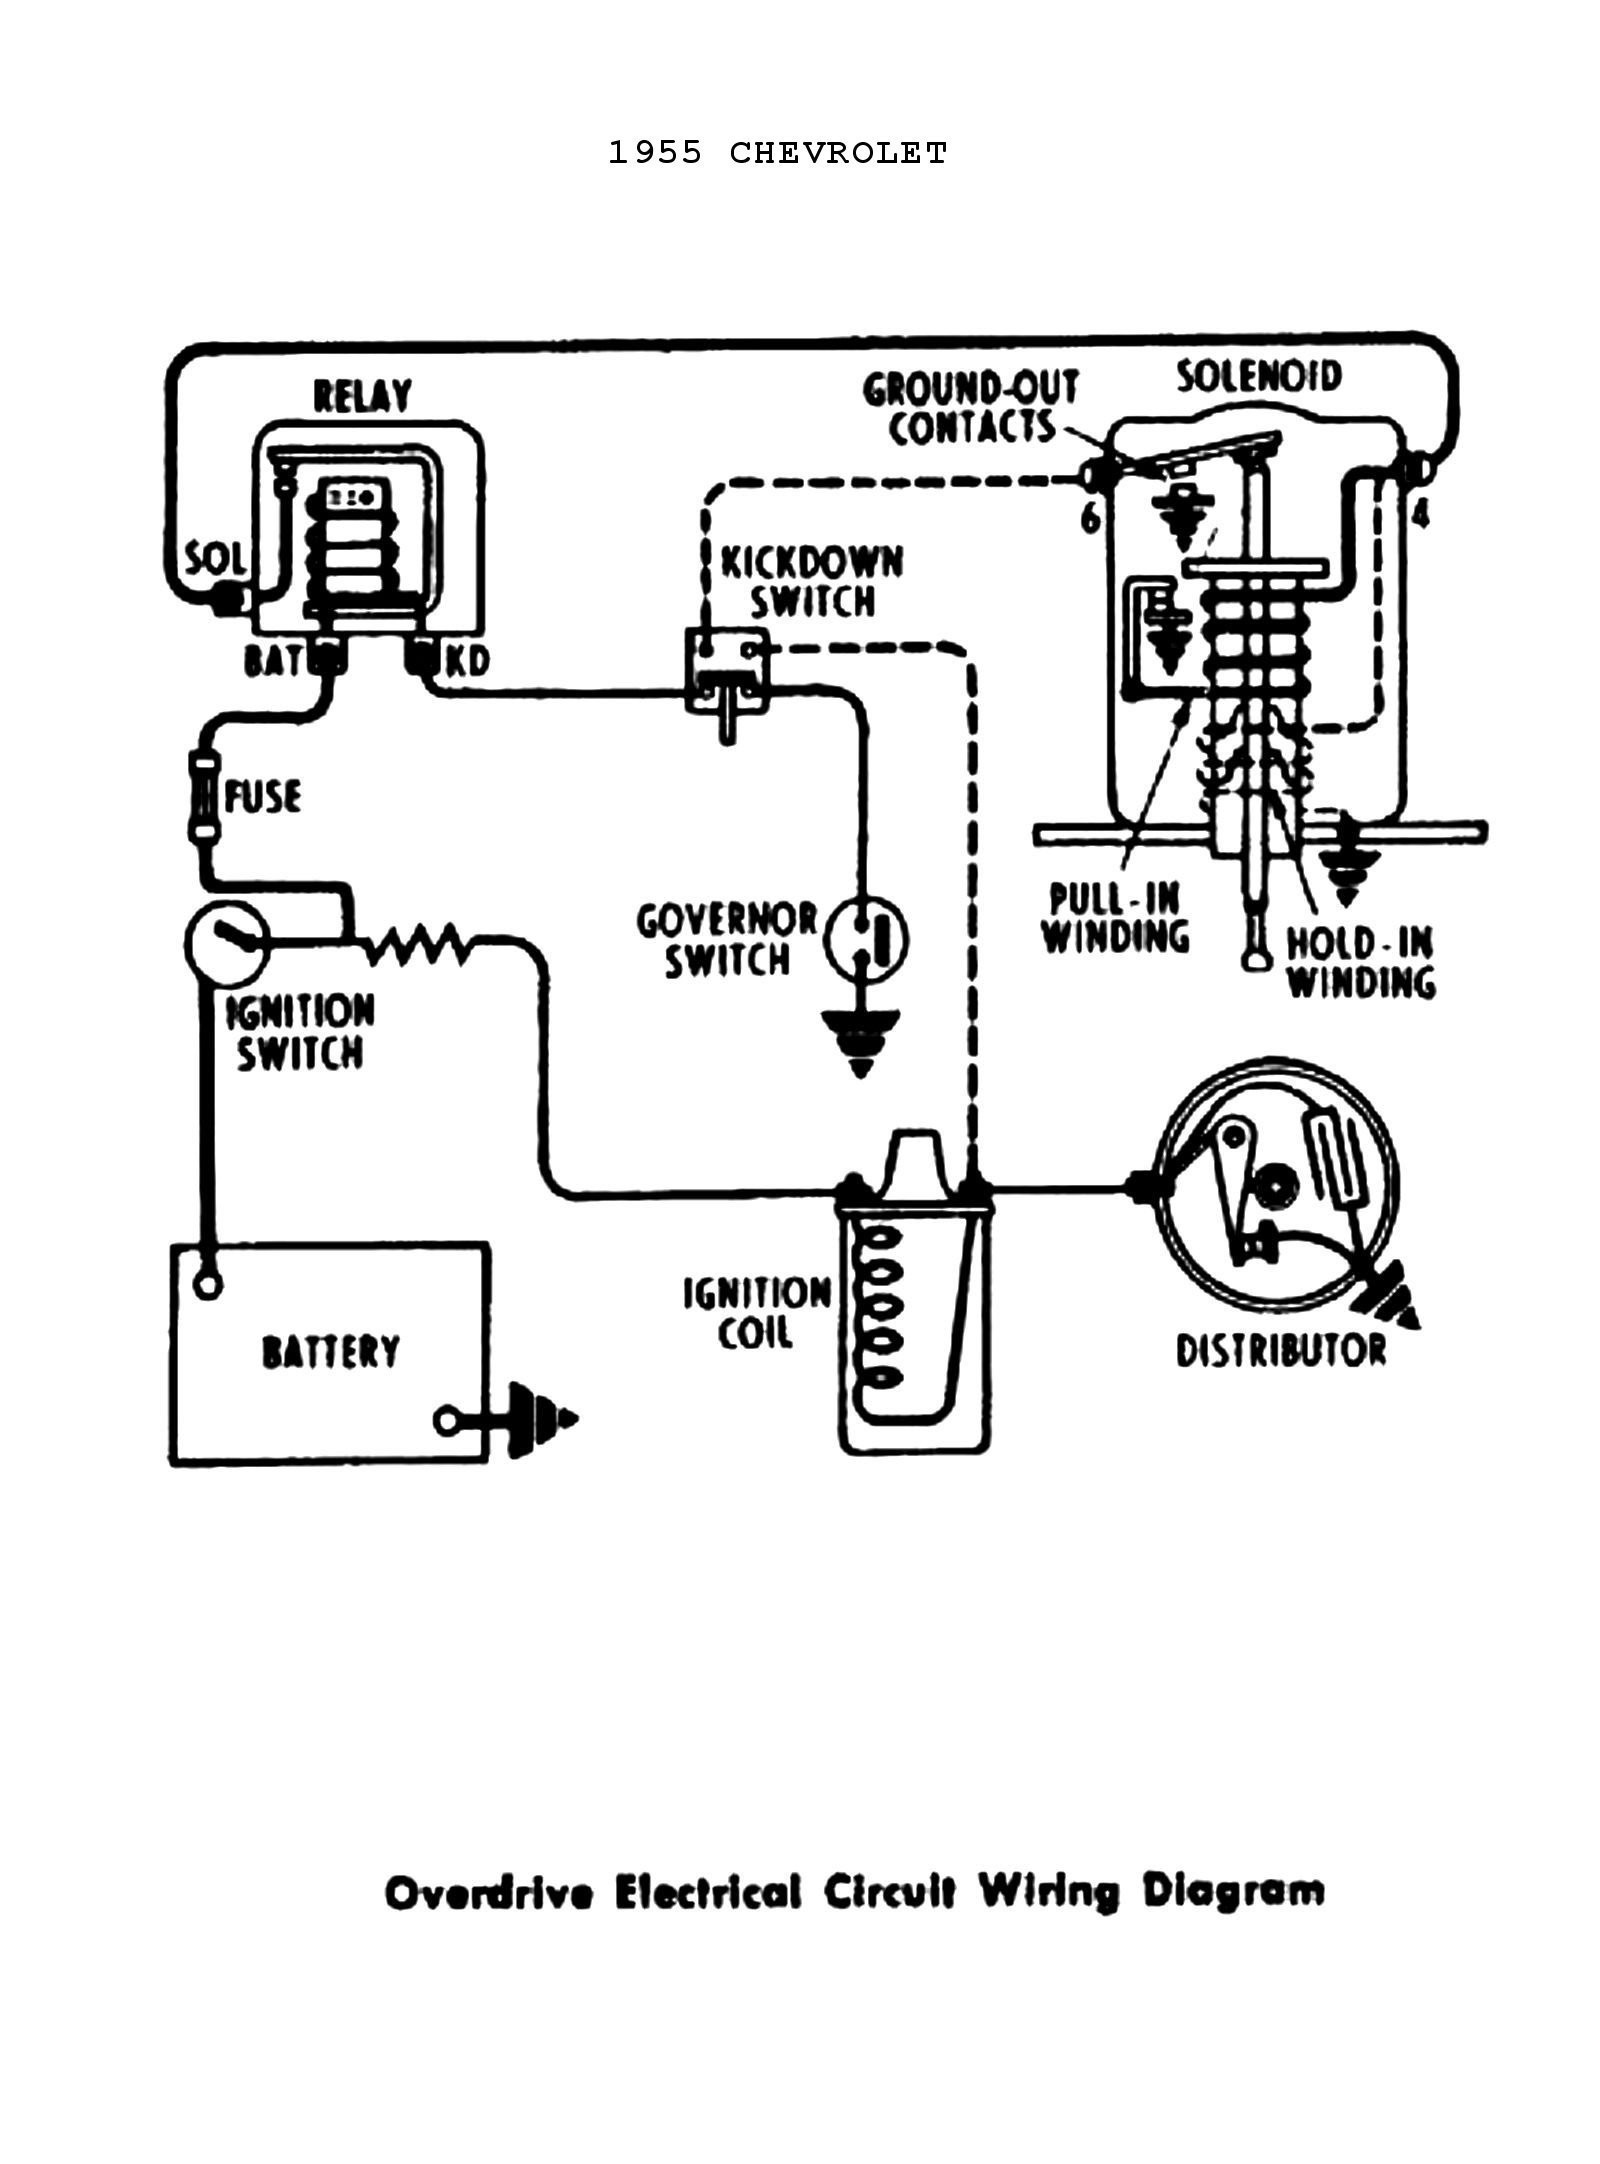 hight resolution of chevy hei ignition system wiring diagrams wiring diagram will be a chevrolet hei distributor wiring diagram